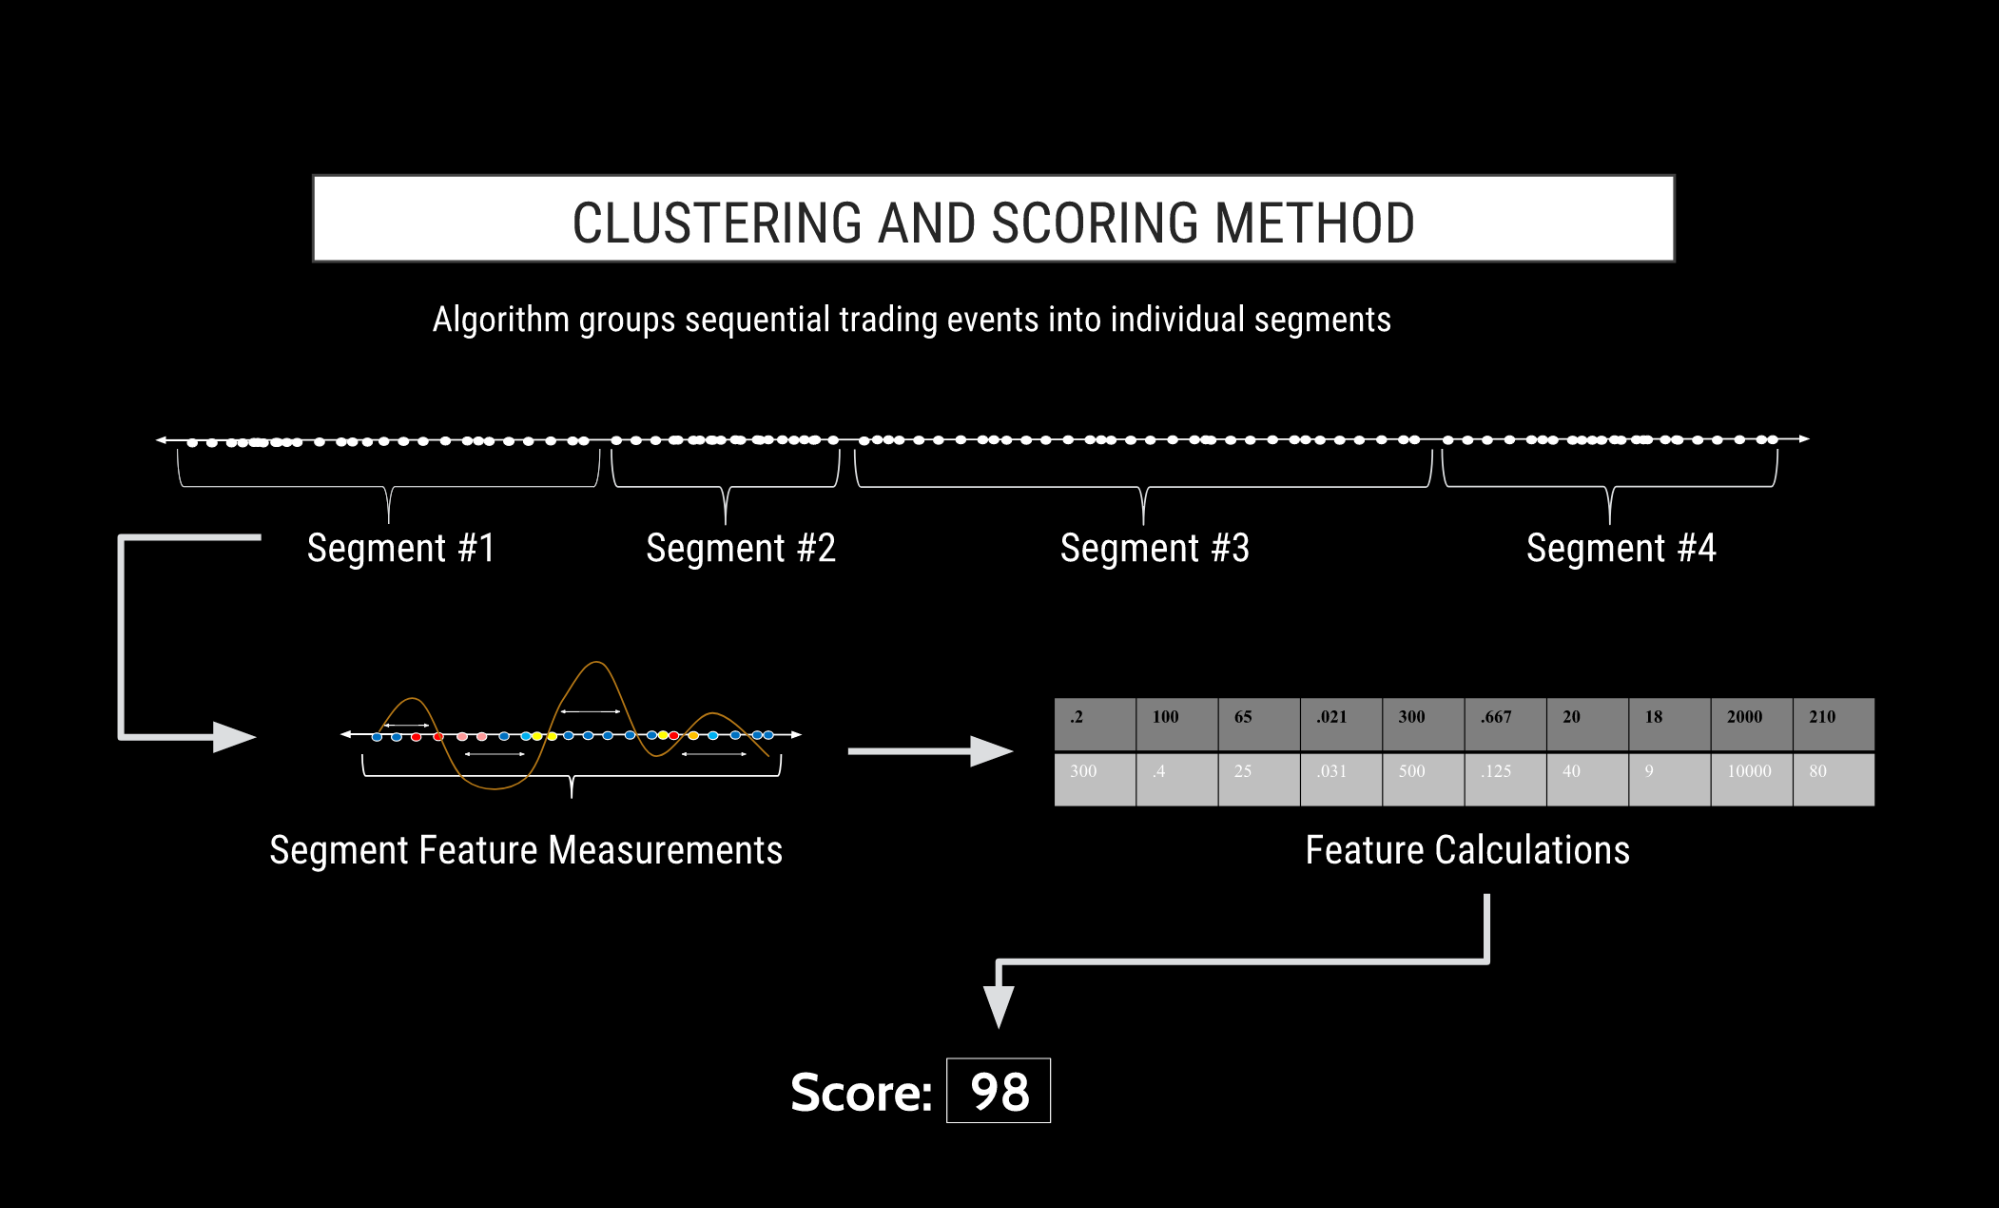 Clustering and Scoring Method